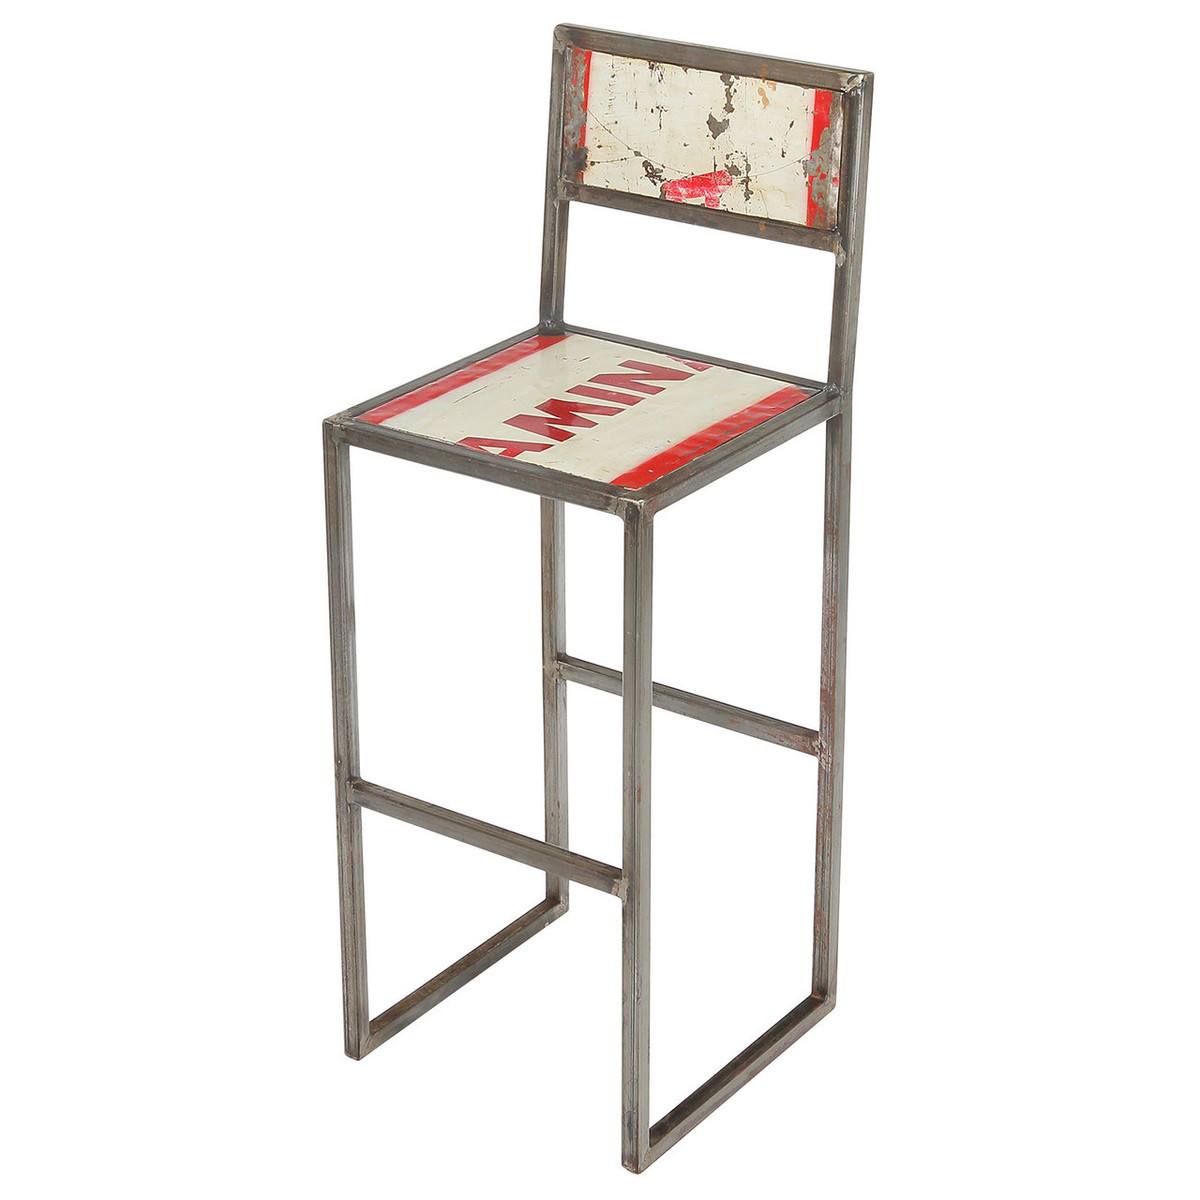 Peachy Refinery Recycled Metal Iron Counter Stool Gamerscity Chair Design For Home Gamerscityorg